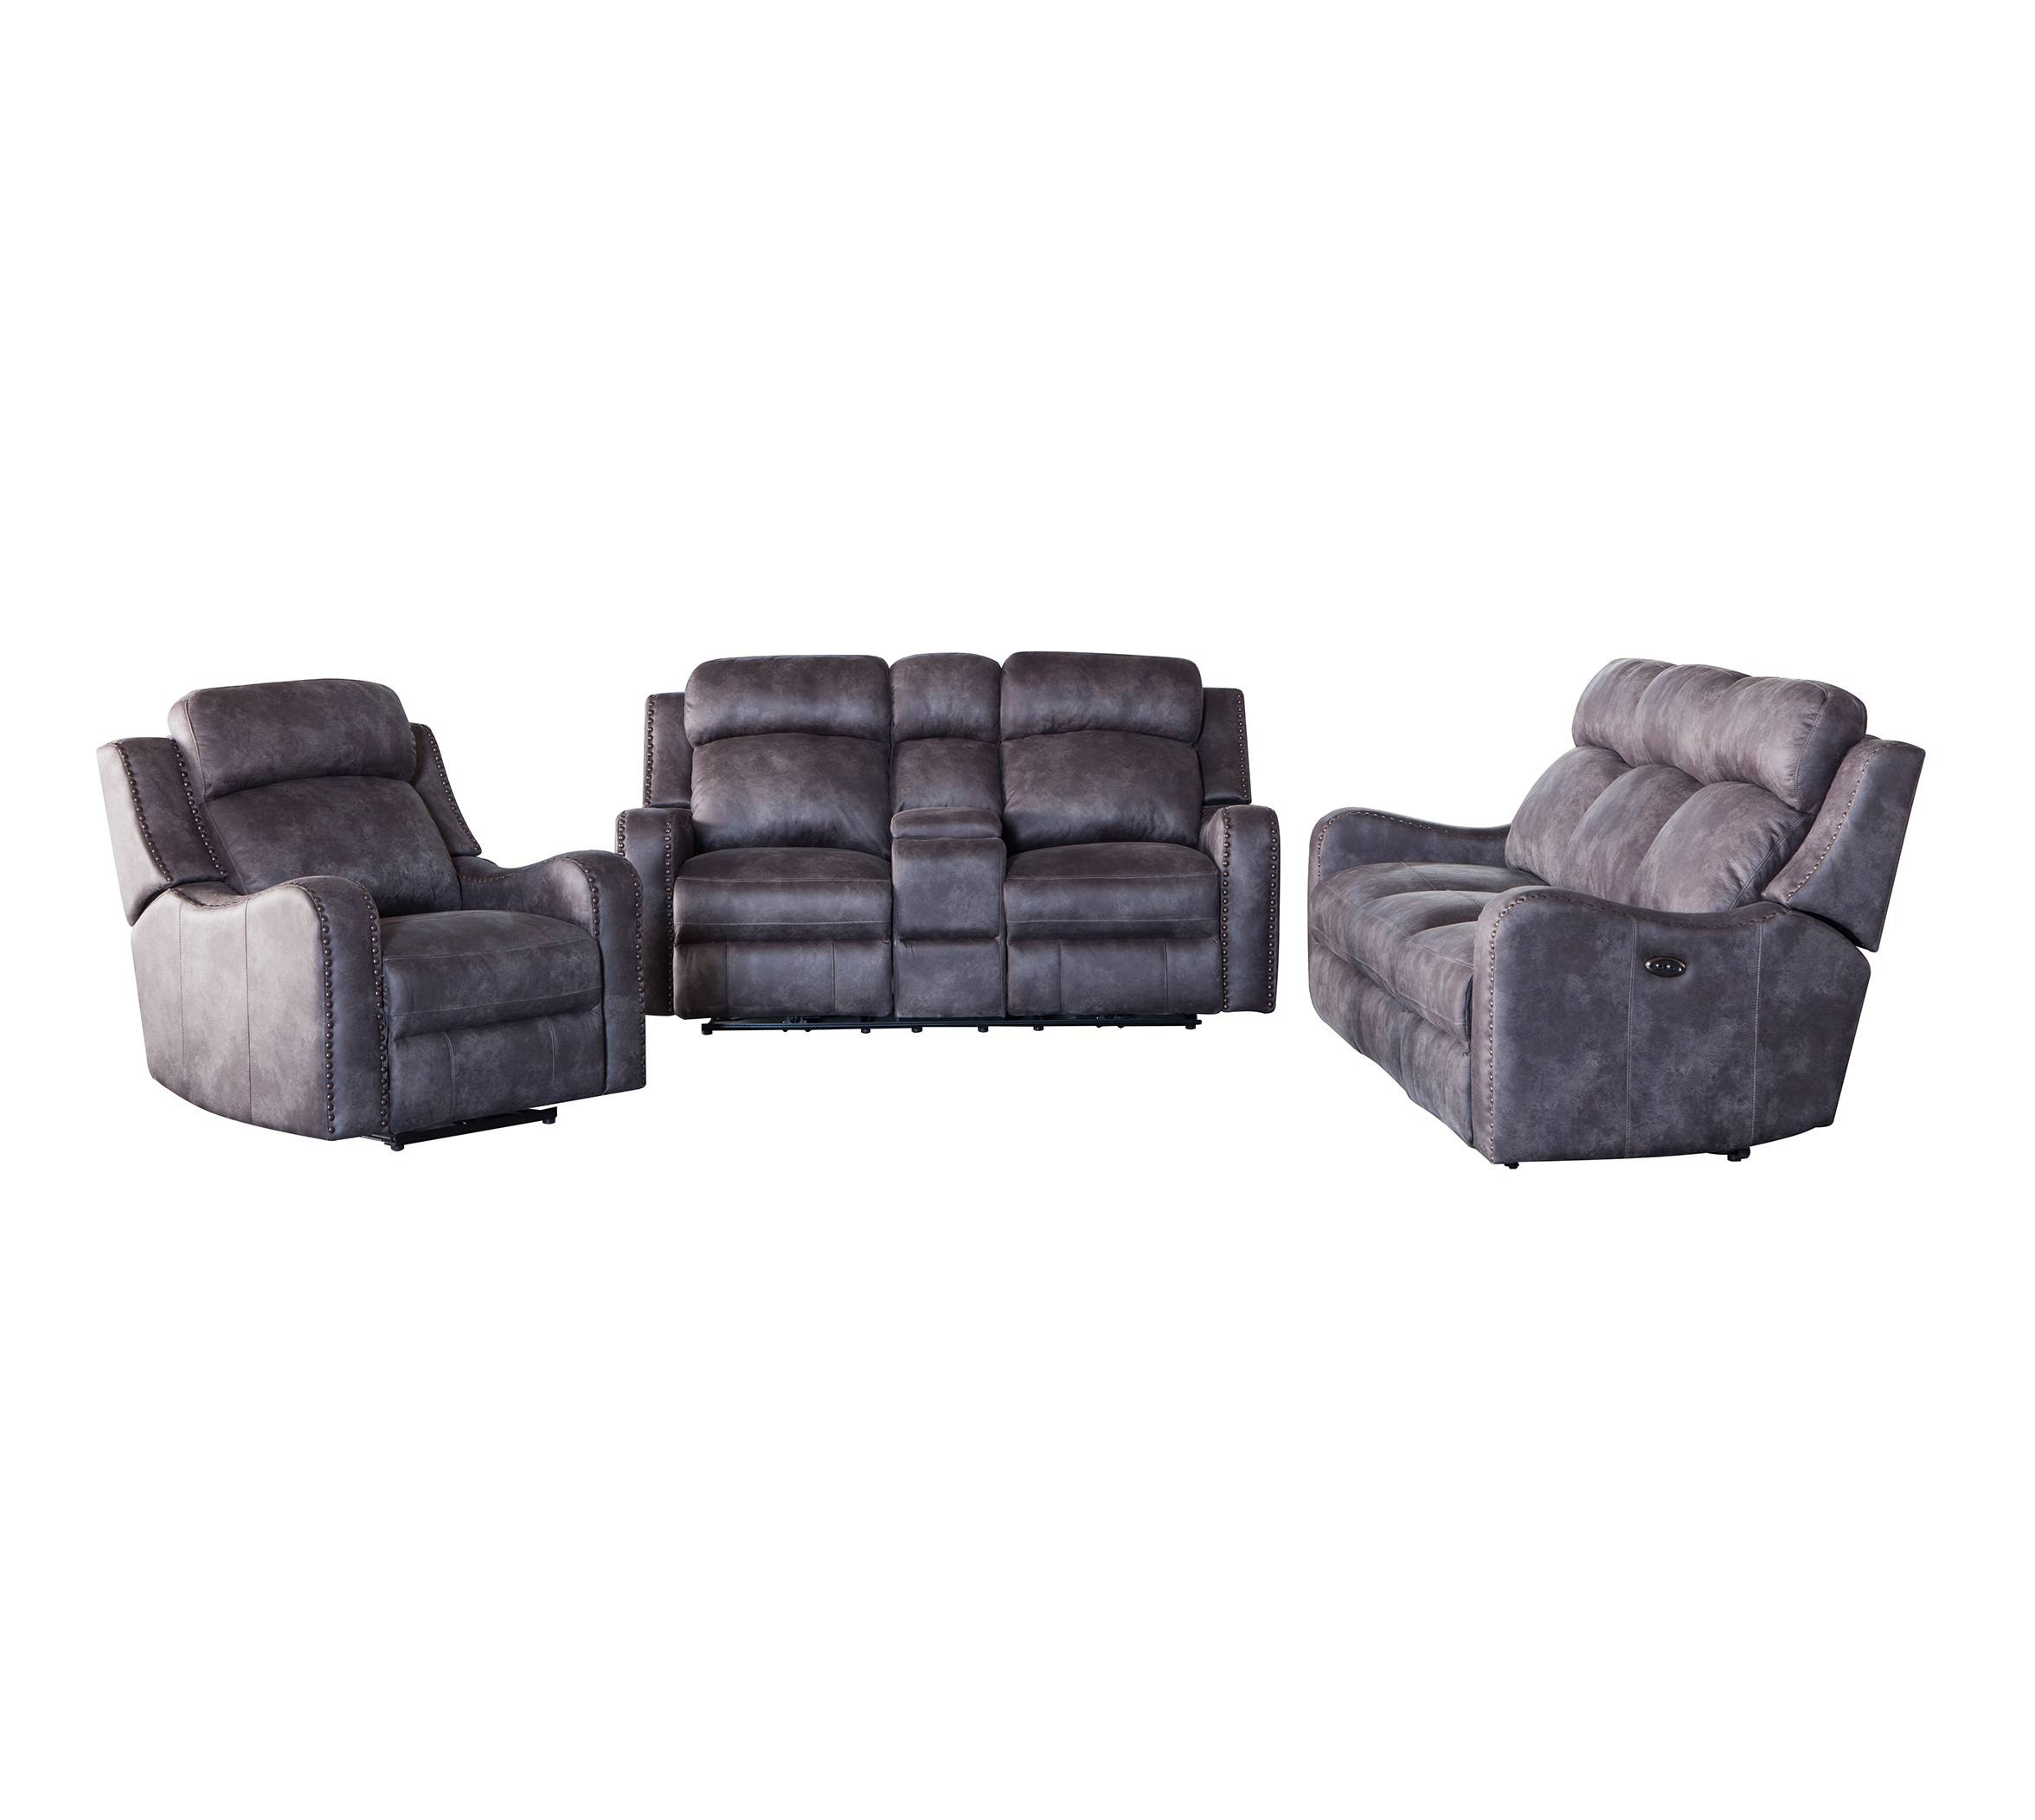 American style leather zero gravity massage 3+2+1 recliner sofa